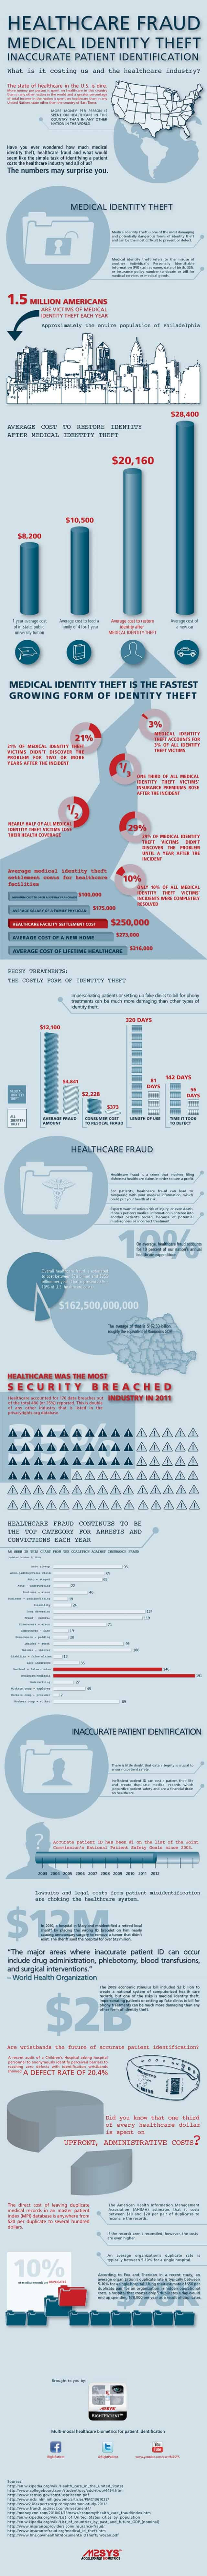 Infographic-on-medical-identity-theft-healthcare-fraud-and-patient-misidentification-s-640x7946